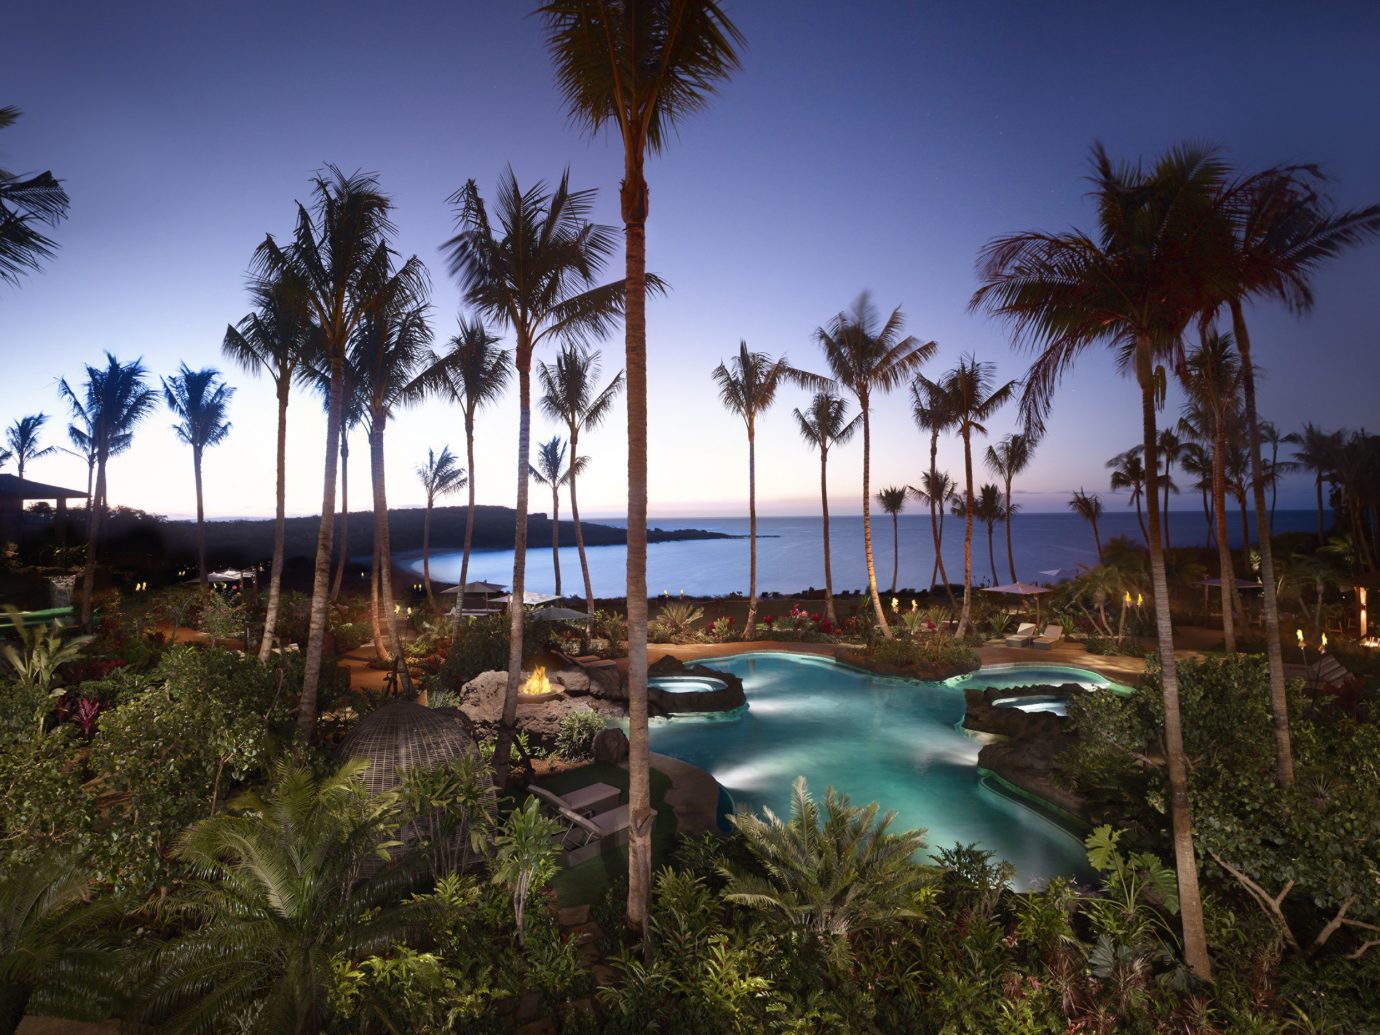 Offbeat tree outdoor palm sky Resort plant palm tree arecales tropics water swimming pool lighting evening leisure resort town reflection vacation real estate landscape lighting estate night computer wallpaper Sea tourism caribbean hotel Pool landscape lined shade Garden area sandy